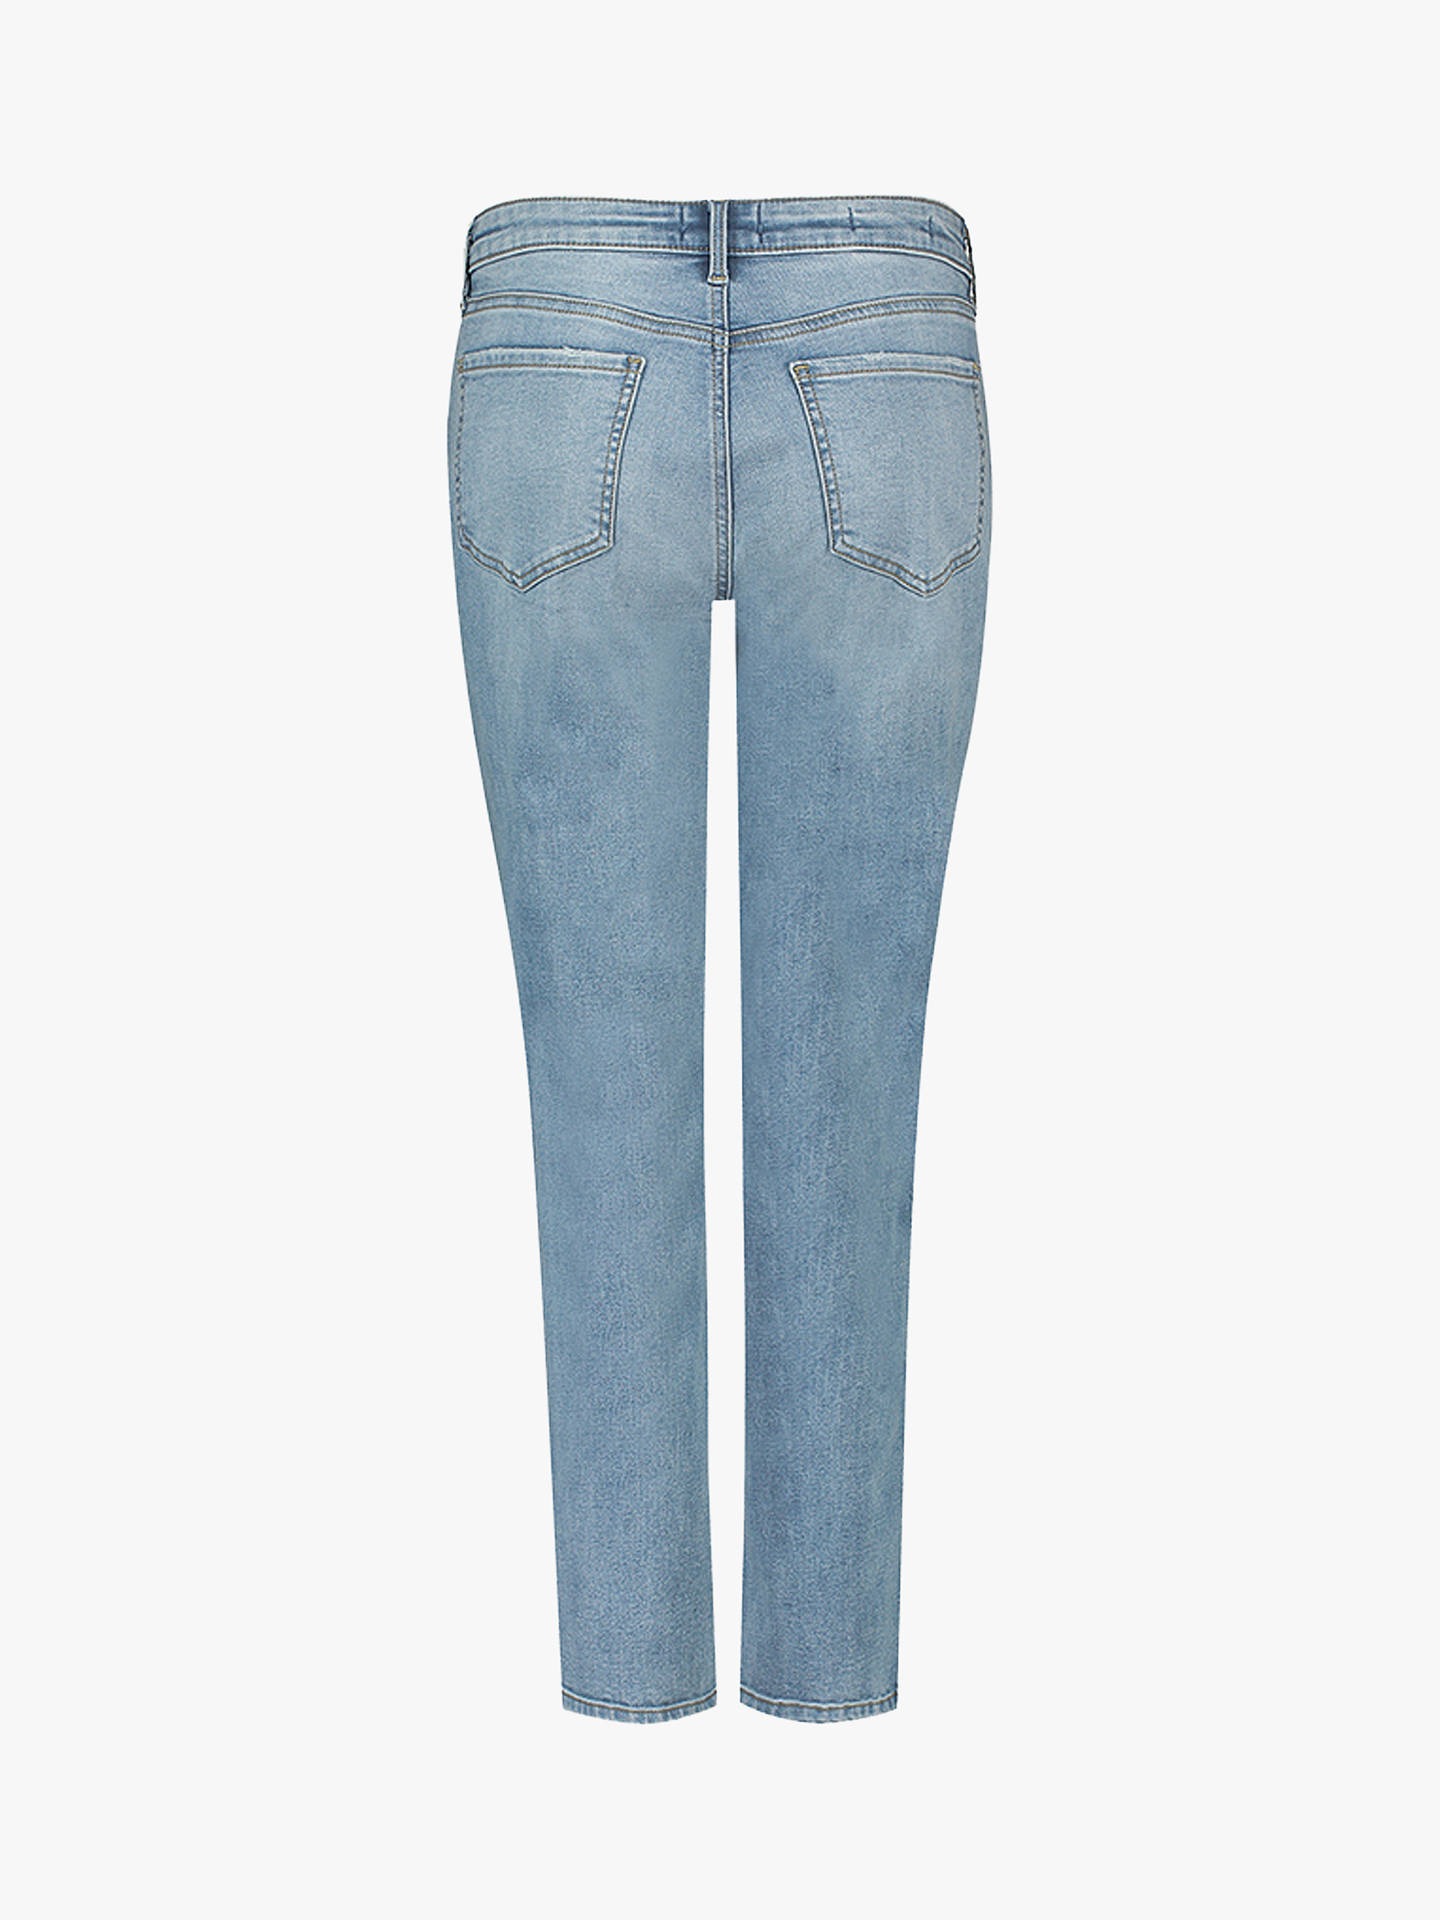 Buy NYDJ Sheri Slim Ankle Jeans, Biscayne, 8 Online at johnlewis.com